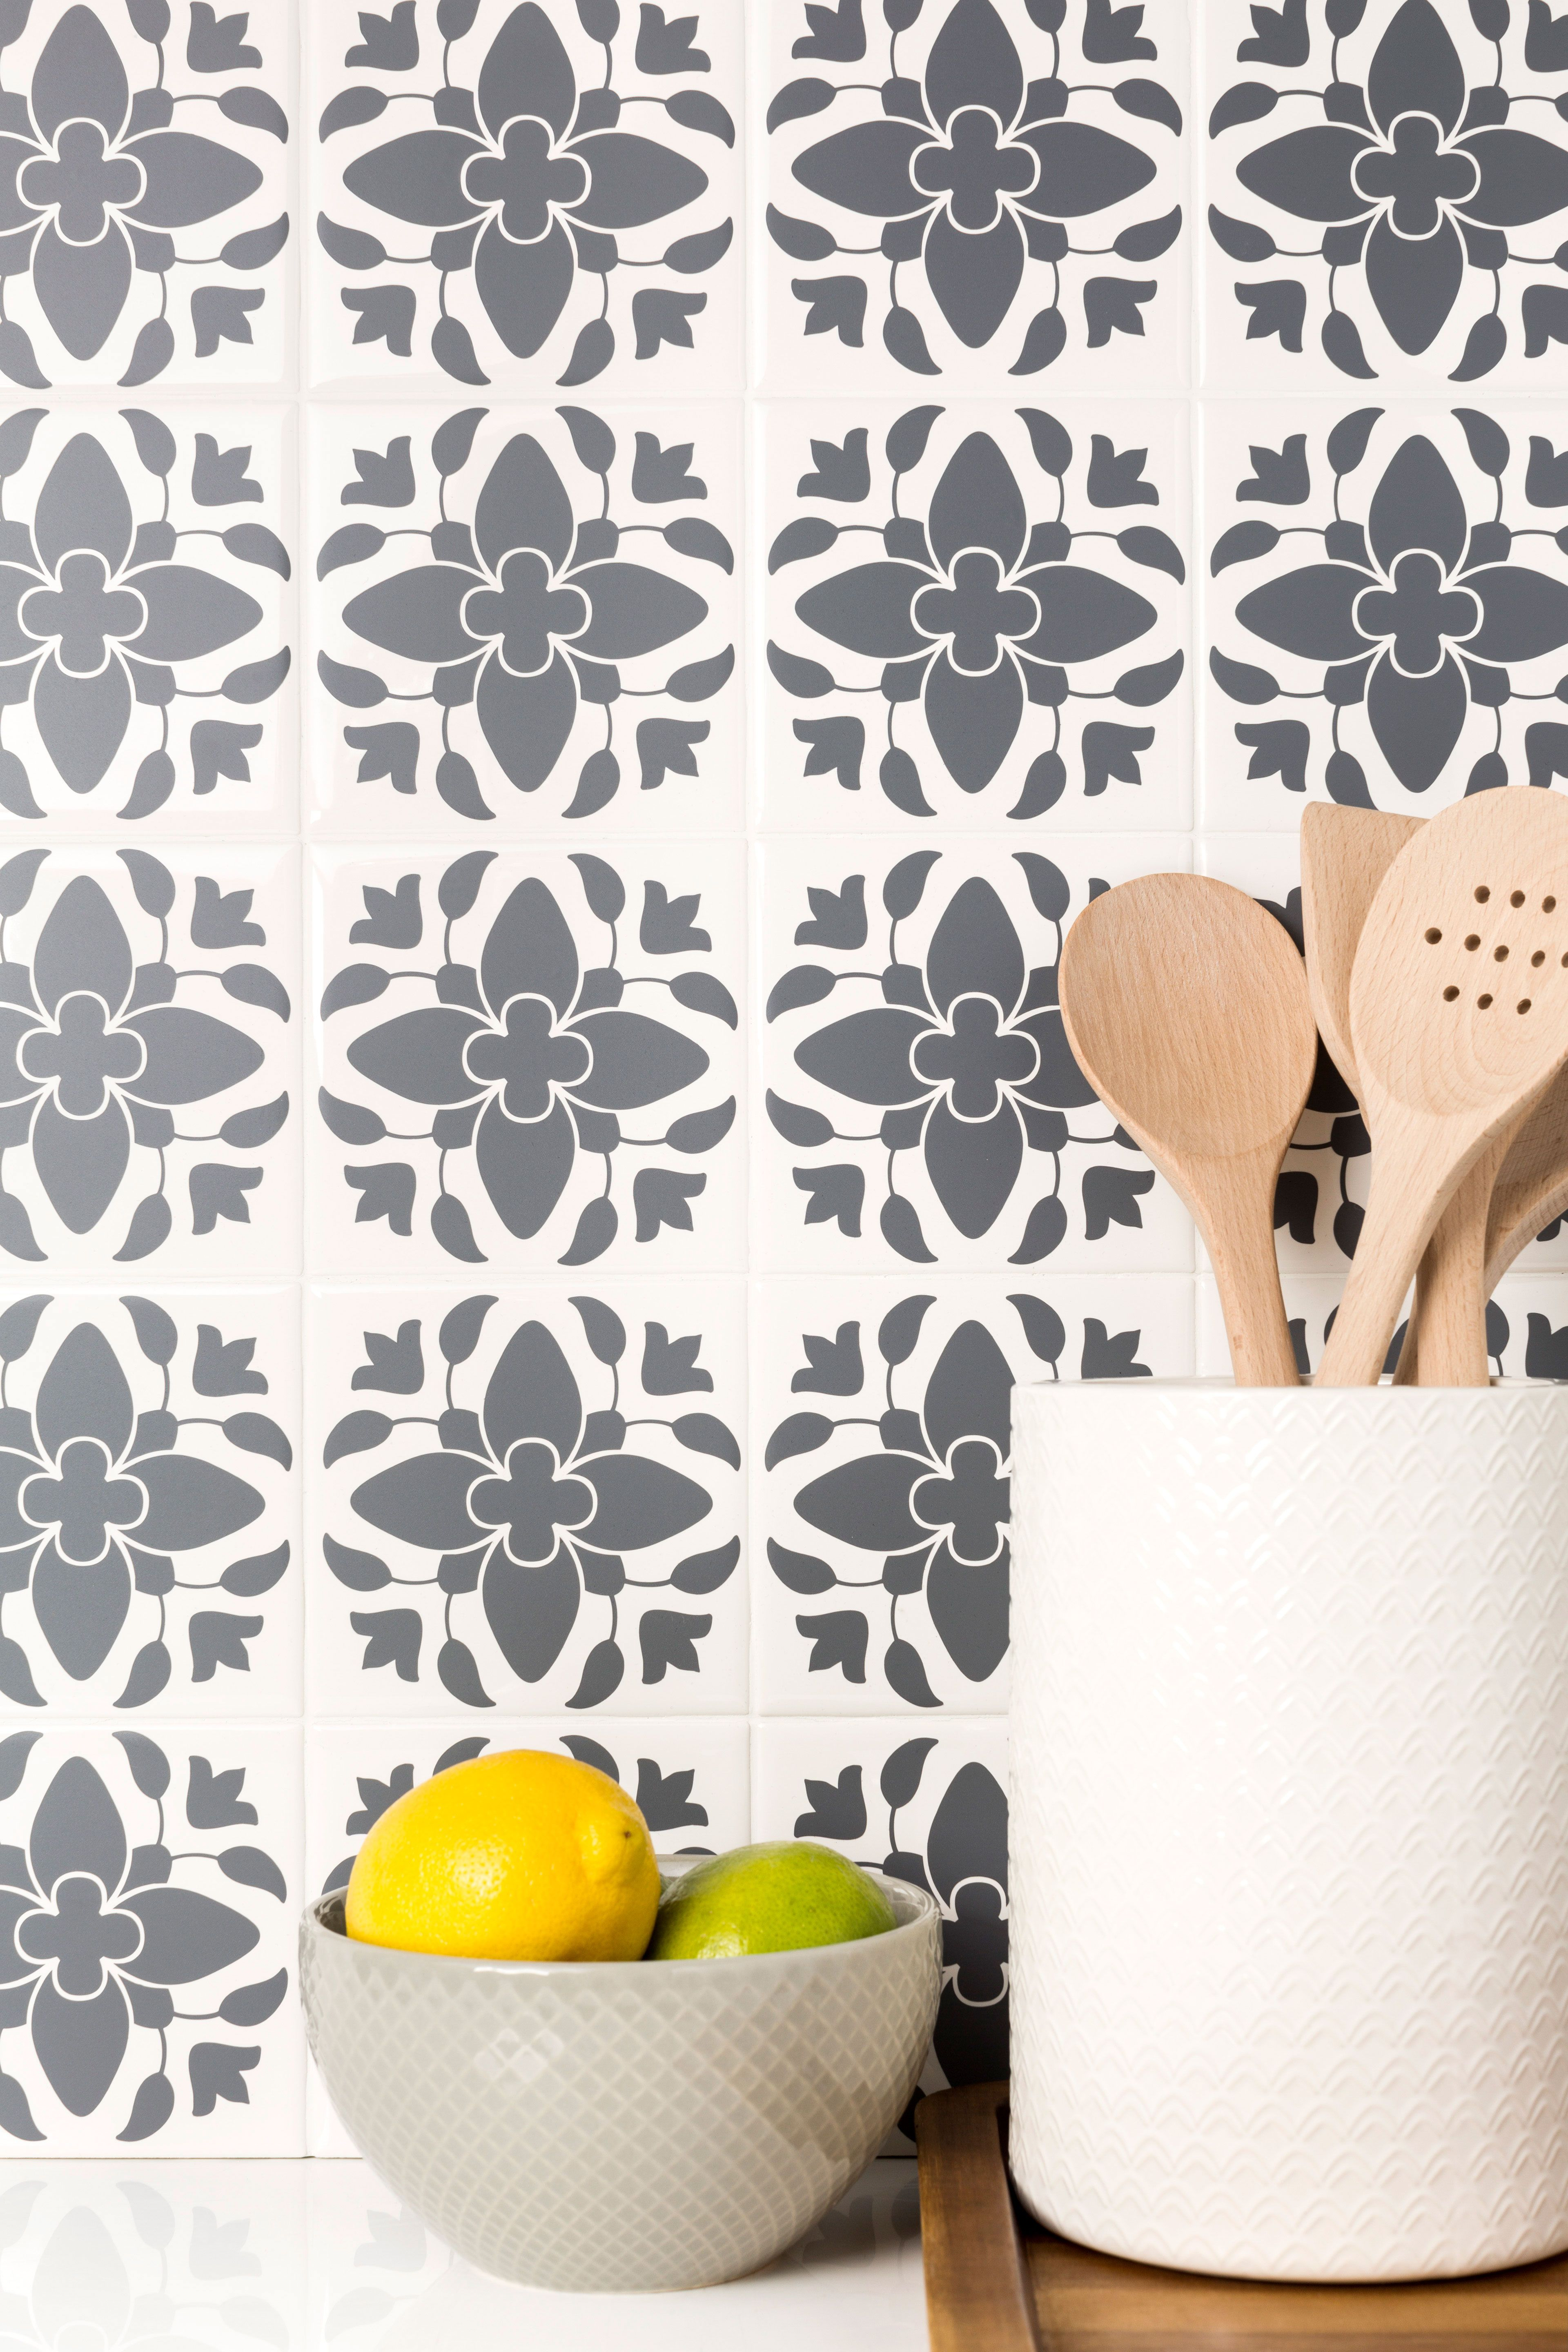 Why Martha S Special Edition Cricut Will Be Your New Go To Crafting Tool Martha Stewart Wallpaper Rooster Kitchen Decor Martha Stewart Living Room